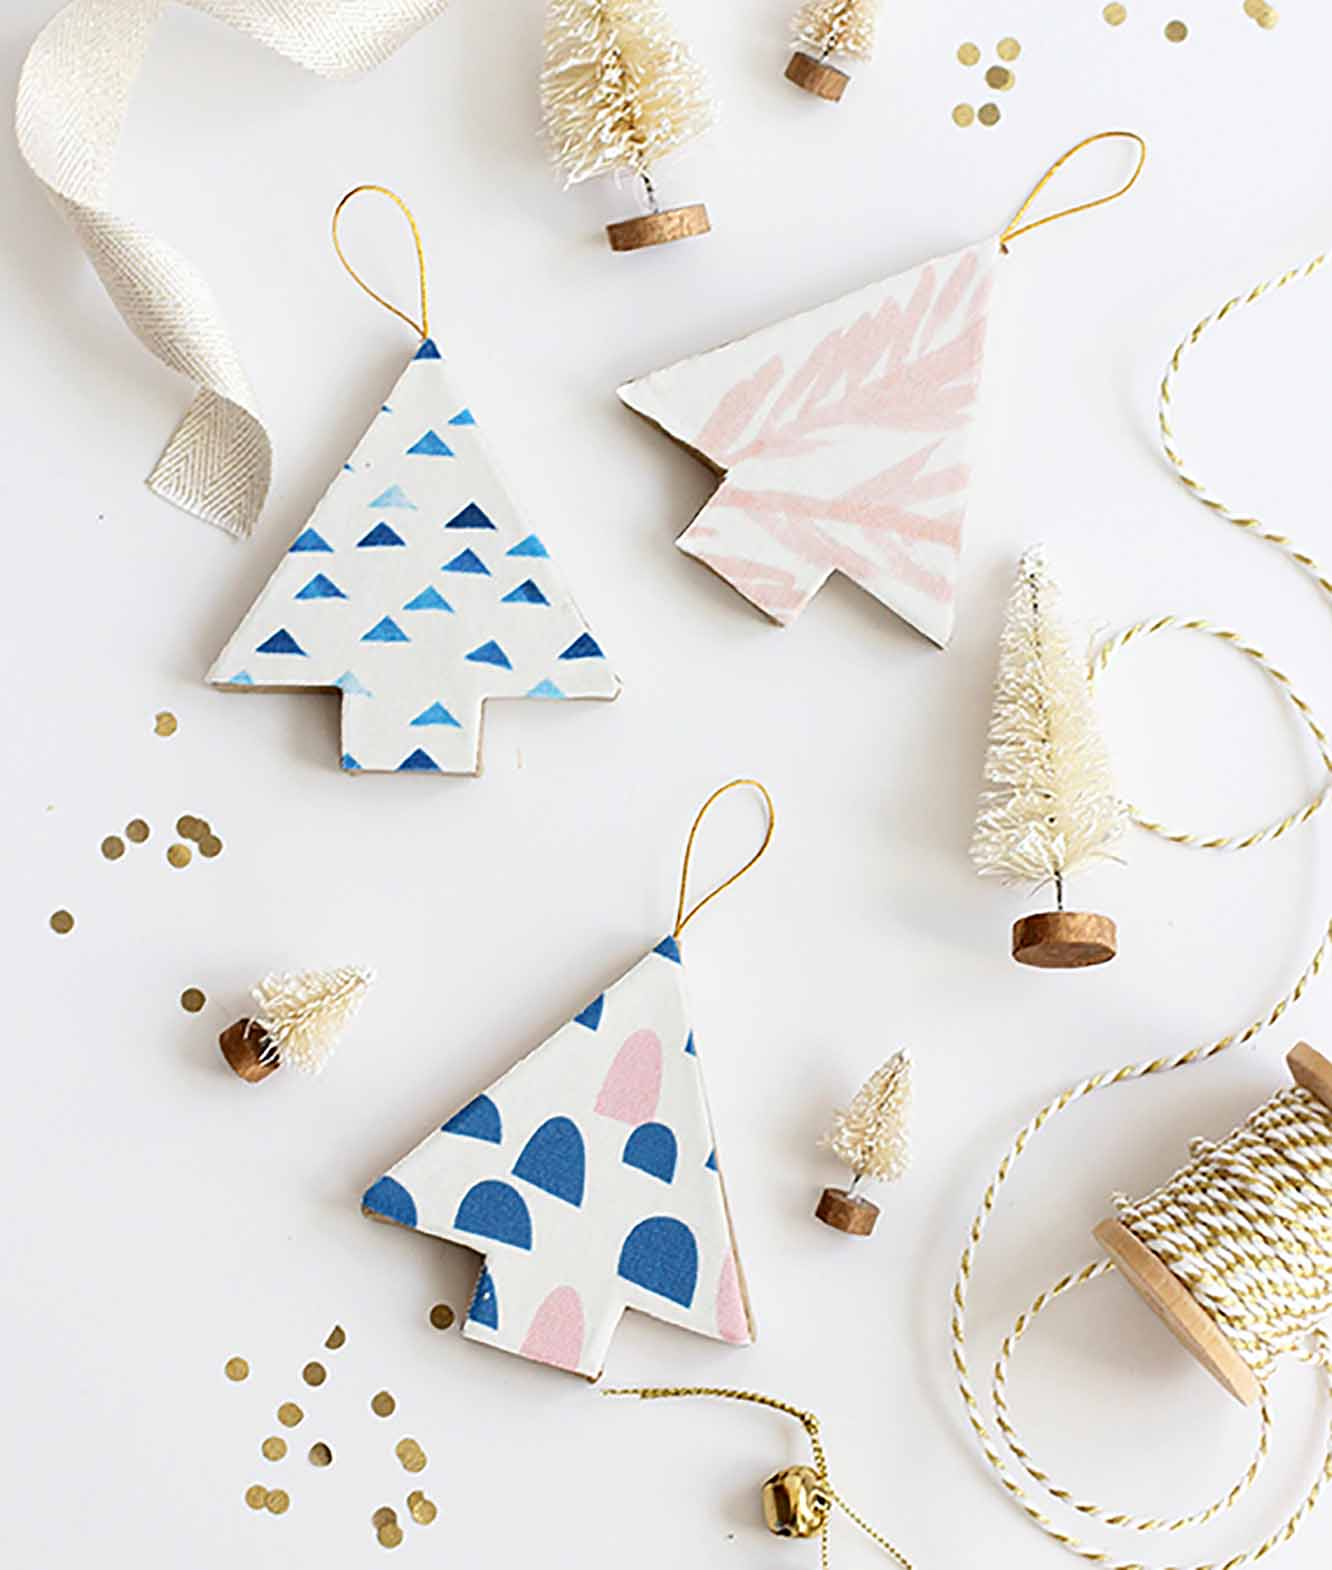 Fabric-Covered Christmas Tree Ornaments